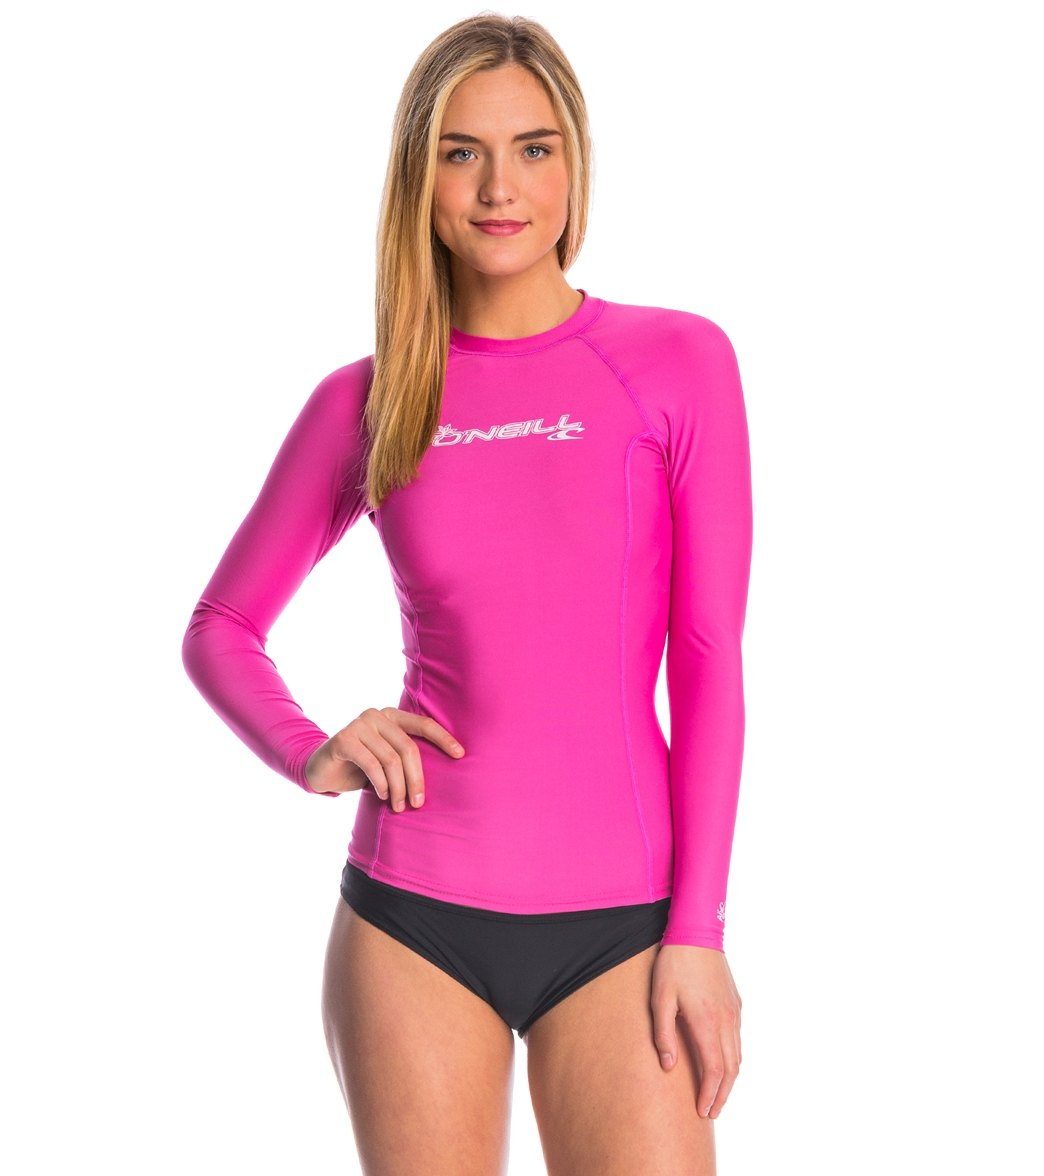 5d1bb9f737 O'Neill Women's Basic Skins Long Sleeve Crew Rashguard